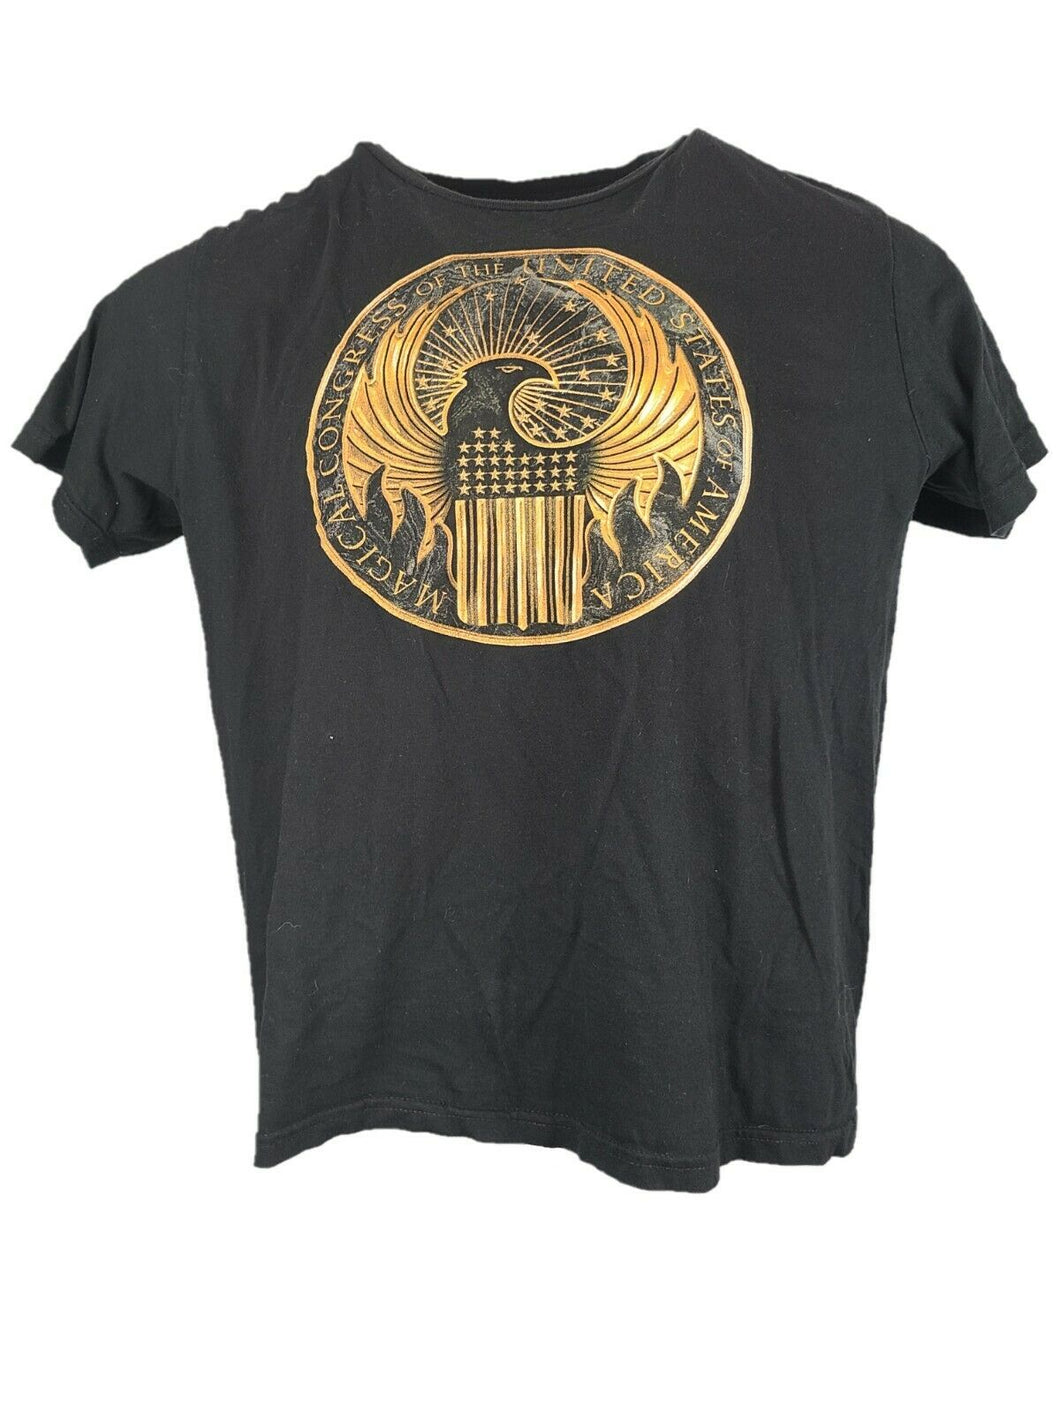 American Congress Of United States Front Graphic T Shirt Size XL Color Black